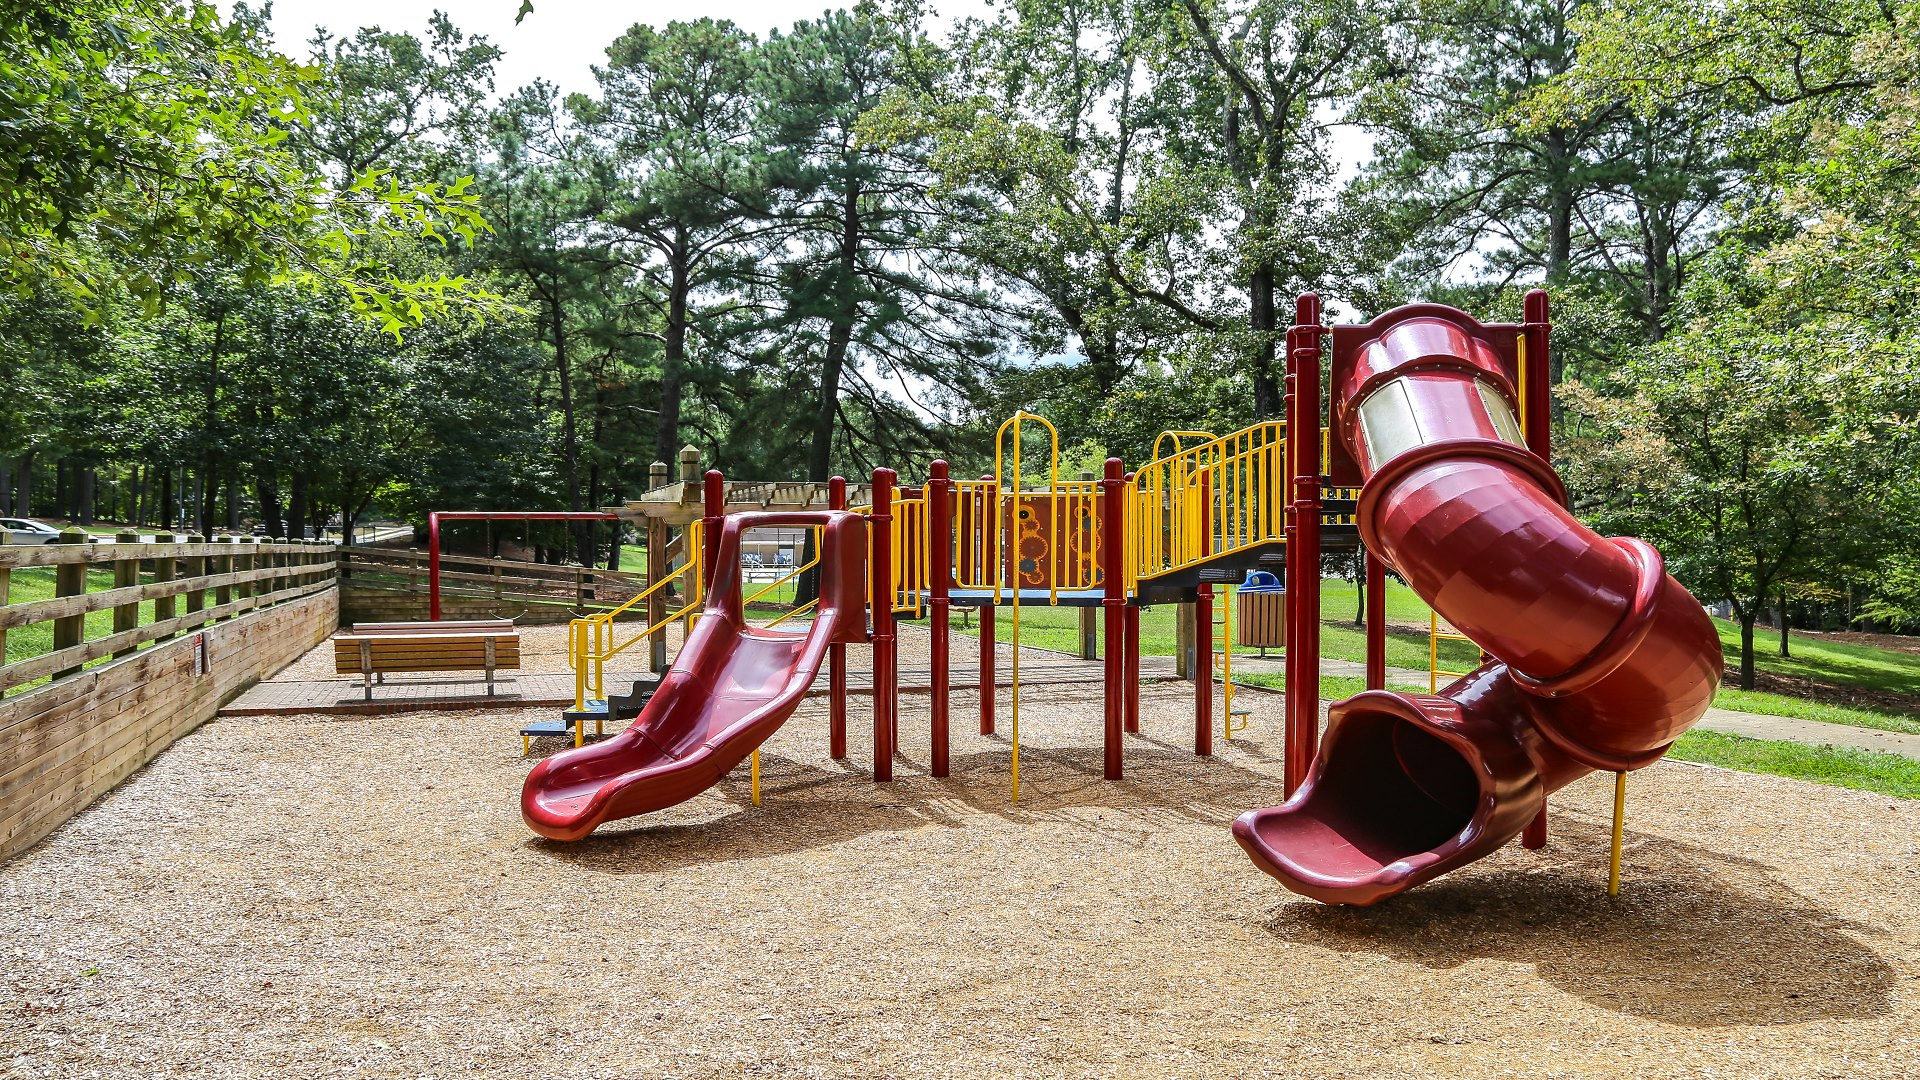 Playground with slides, swings and more on a woodchip surface at Biltmore Hills Park